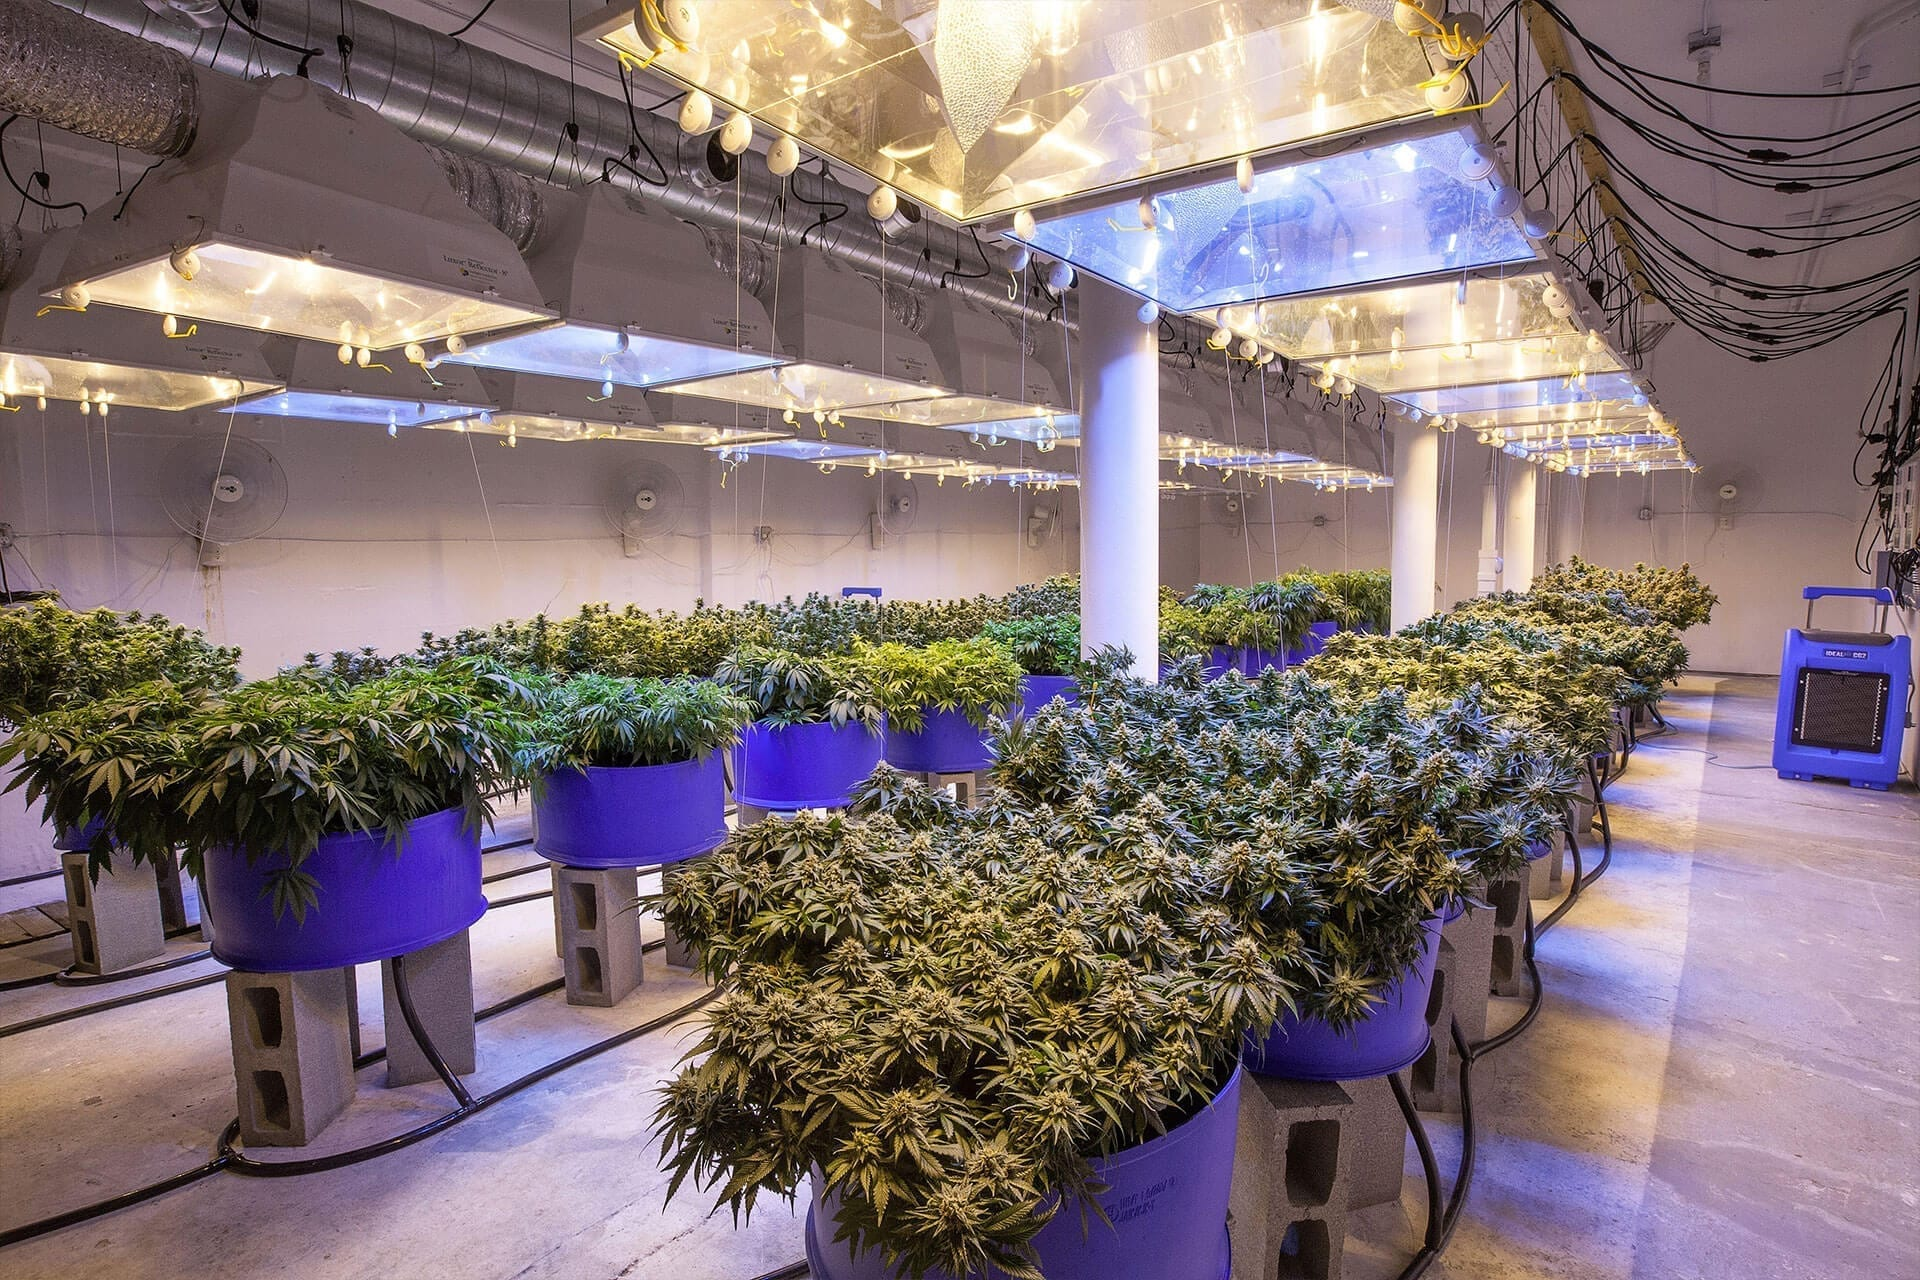 Cannabis cultivation - Indoor Cannabis Growing